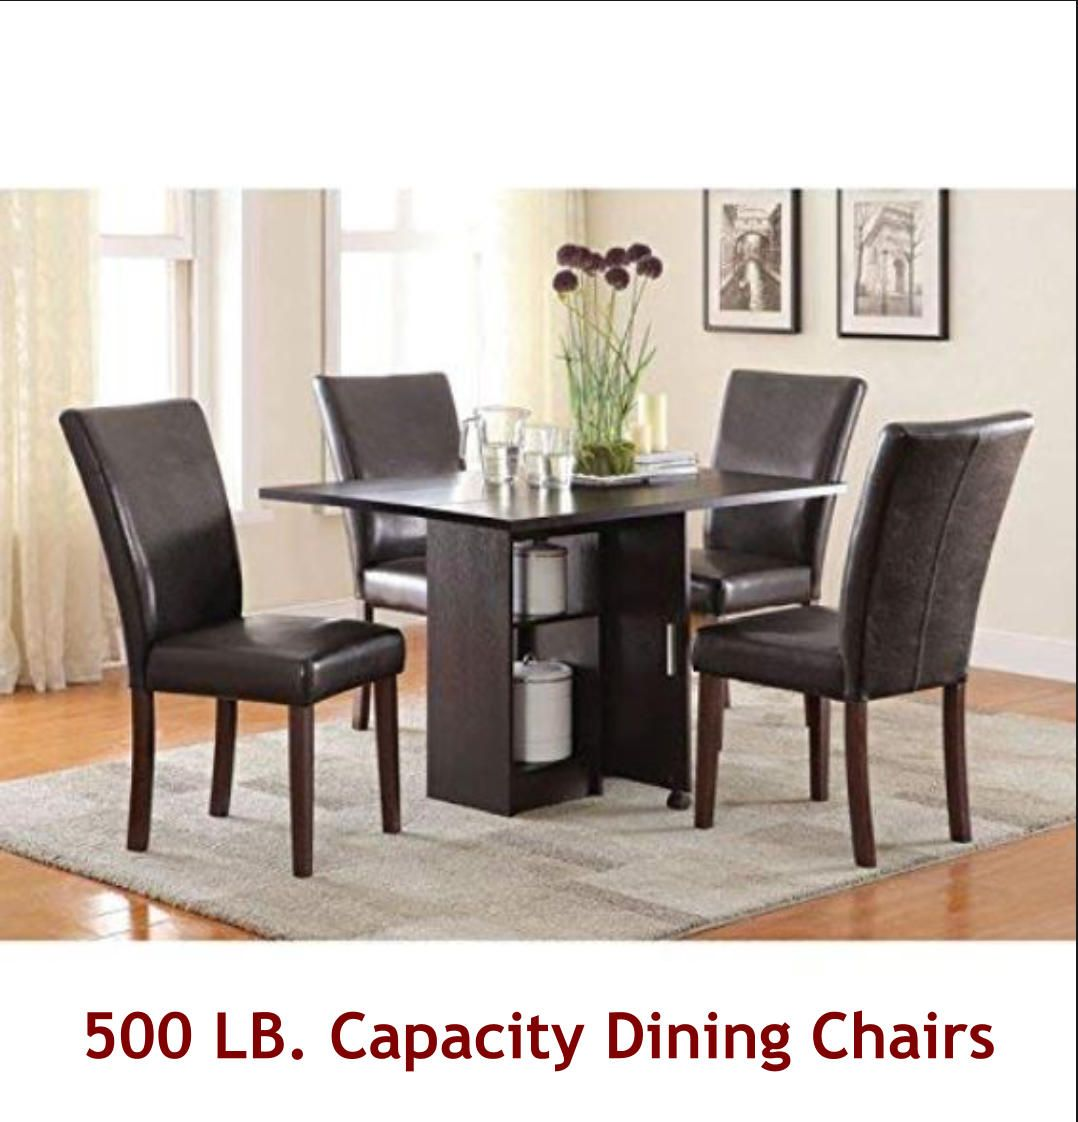 Heavy Duty Dining Chairs For The Holidays Free Shipping Home Homedecor Dining Furniture Sets Dining Chairs Handcrafted Dining Table